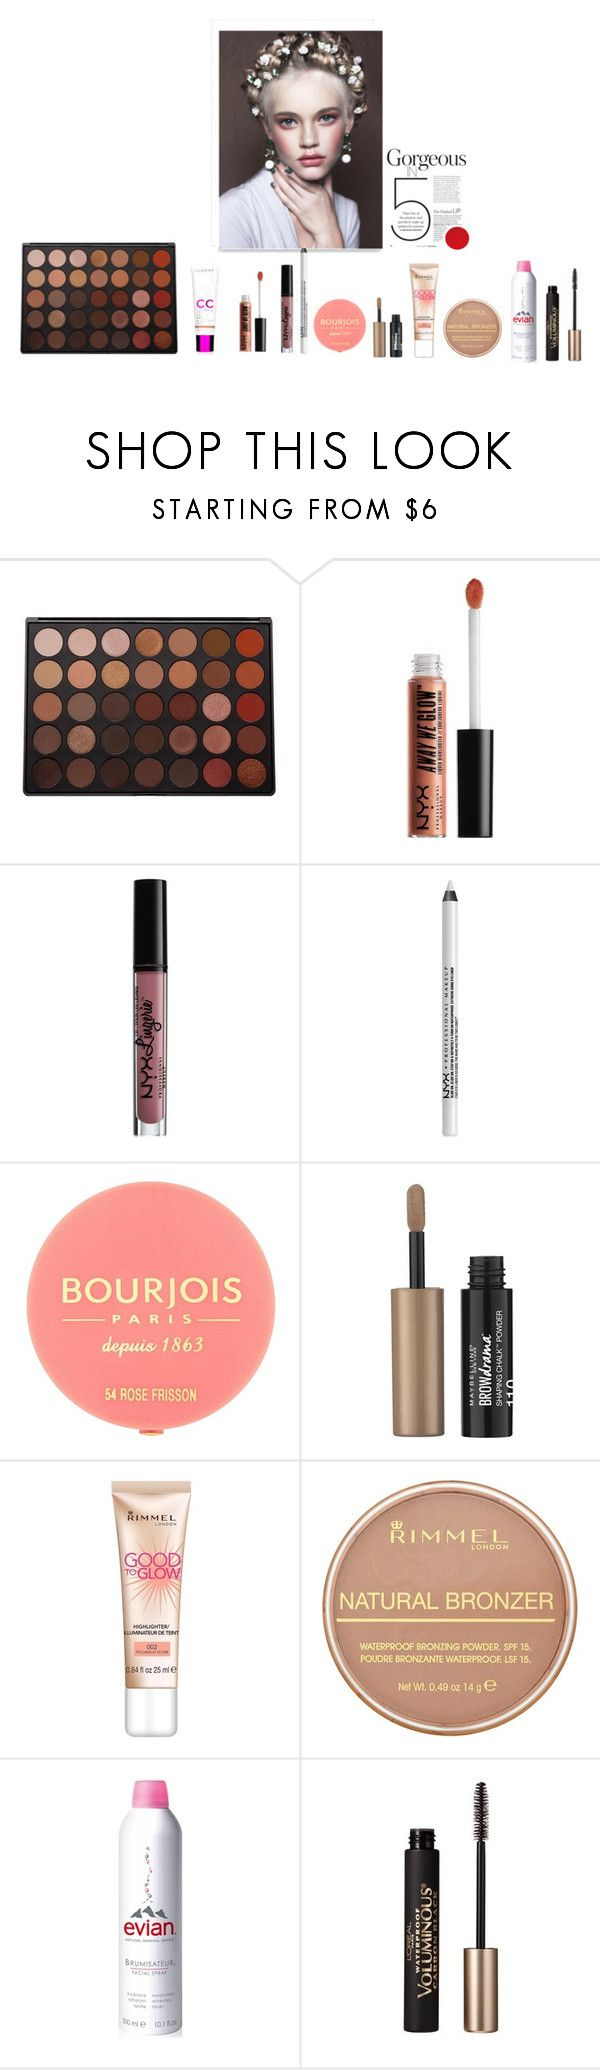 """Ready in 5: summer makeup"" by olesyabond on Polyvore featuring beauty, Morphe, NYX, Bourjois, Maybelline, Rimmel, Evian and L'Oréal Paris"